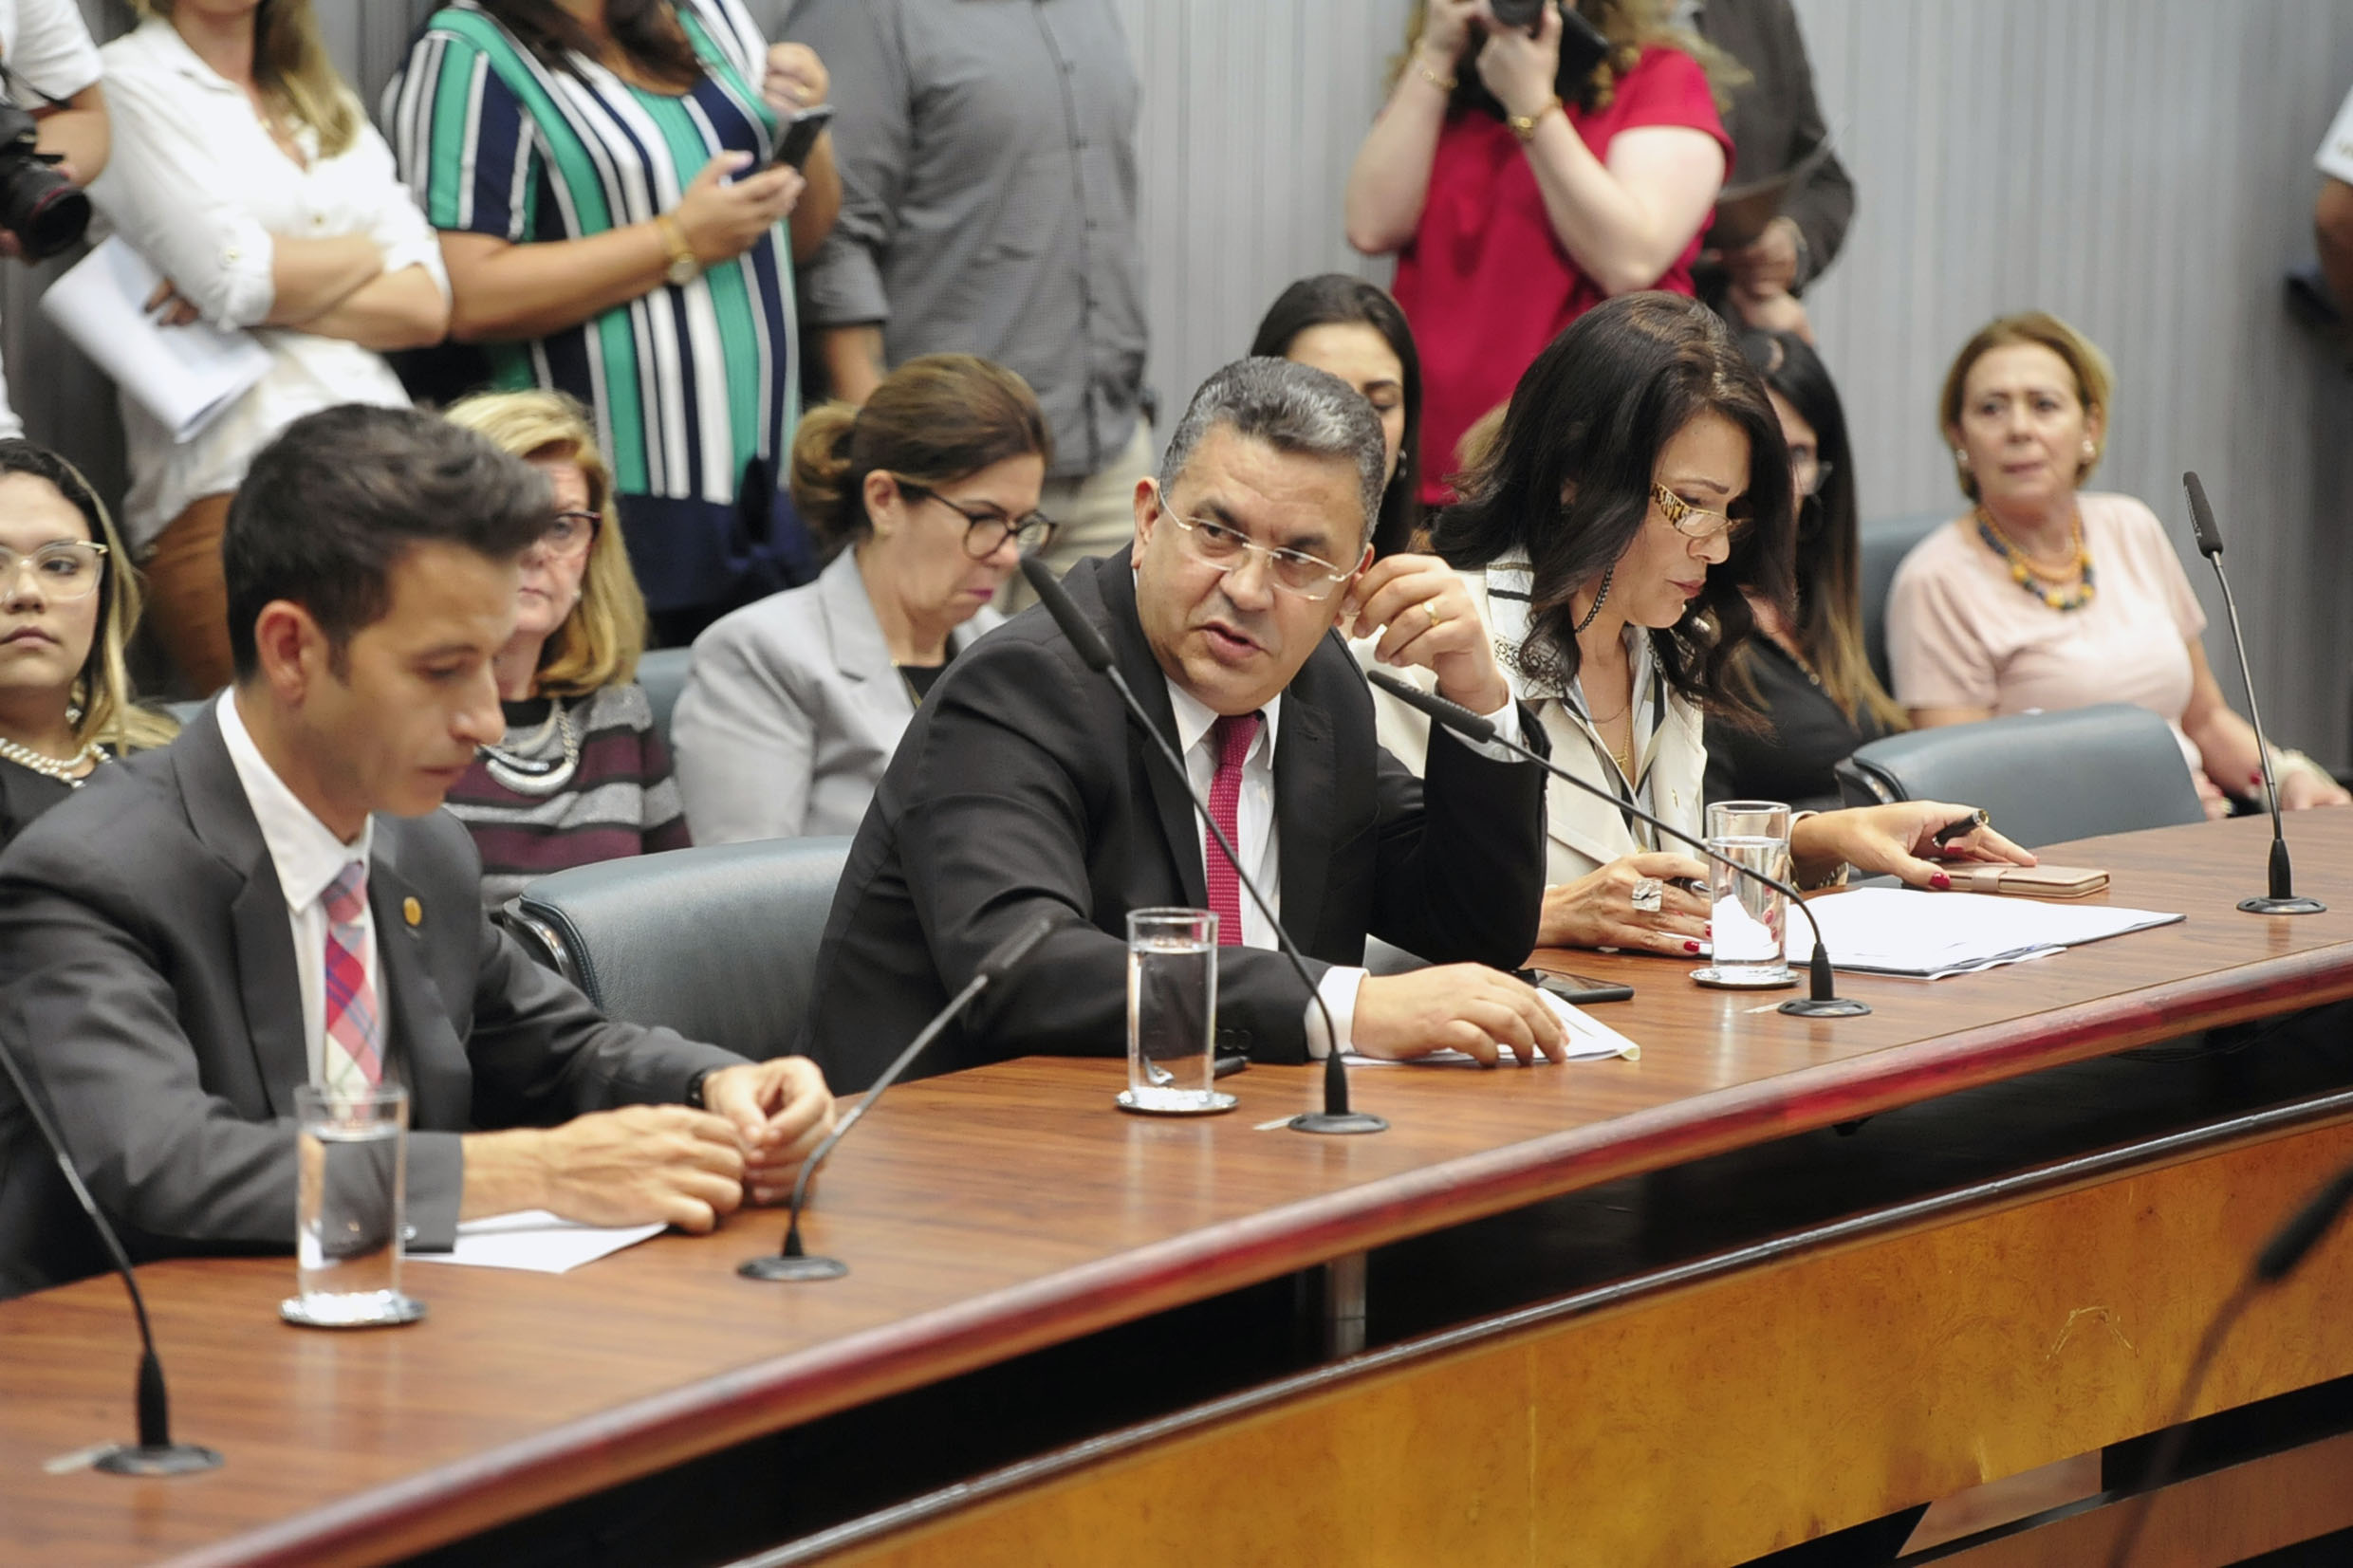 Parlamentares na comissão<a style='float:right' href='https://www3.al.sp.gov.br/repositorio/noticia/N-05-2019/fg234069.jpg' target=_blank><img src='/_img/material-file-download-white.png' width='14px' alt='Clique para baixar a imagem'></a>